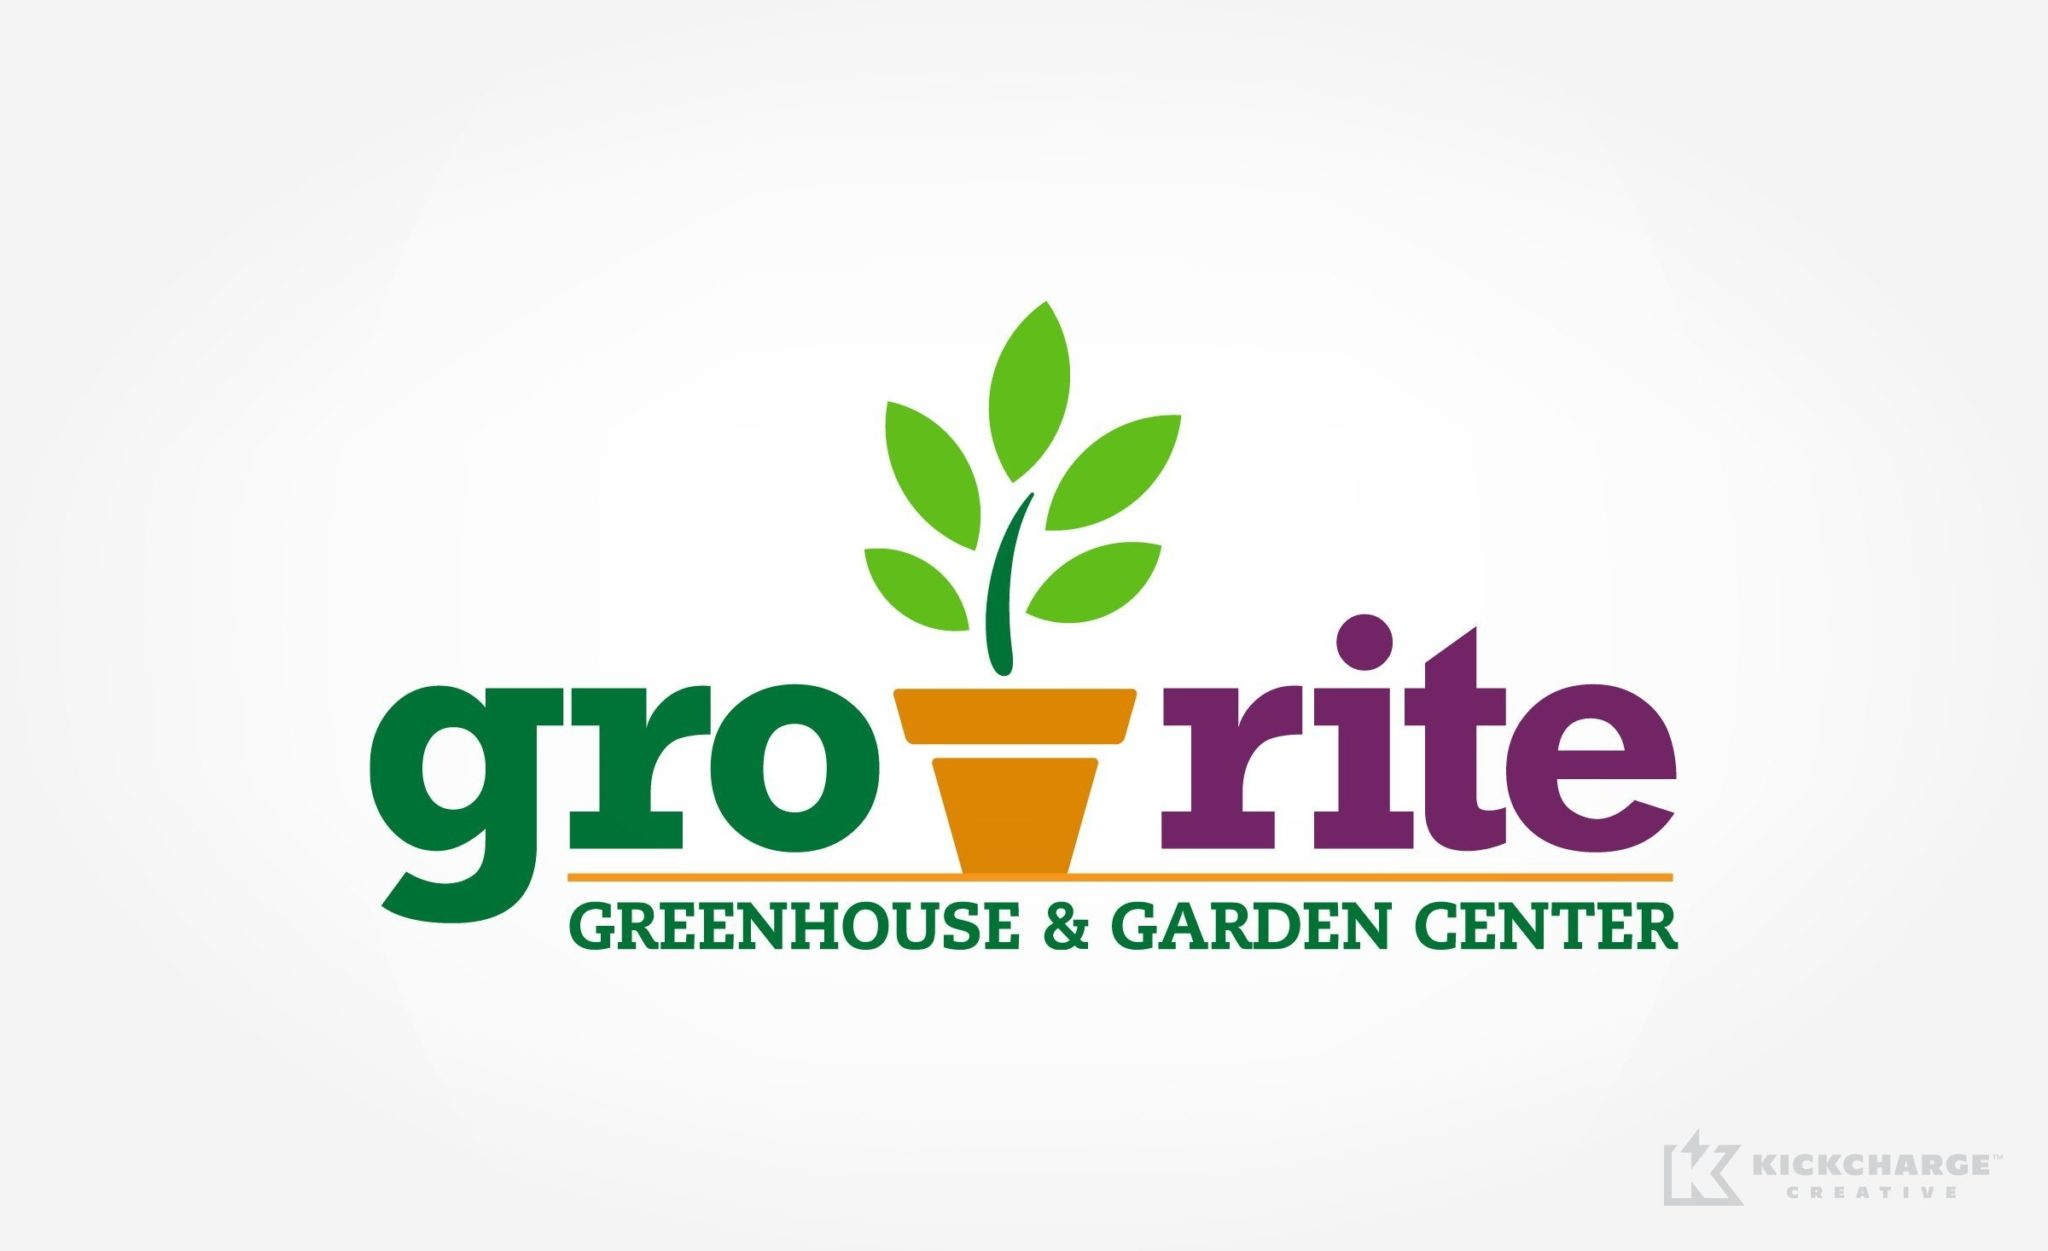 Logo and web design for a New Jersey home and garden center.